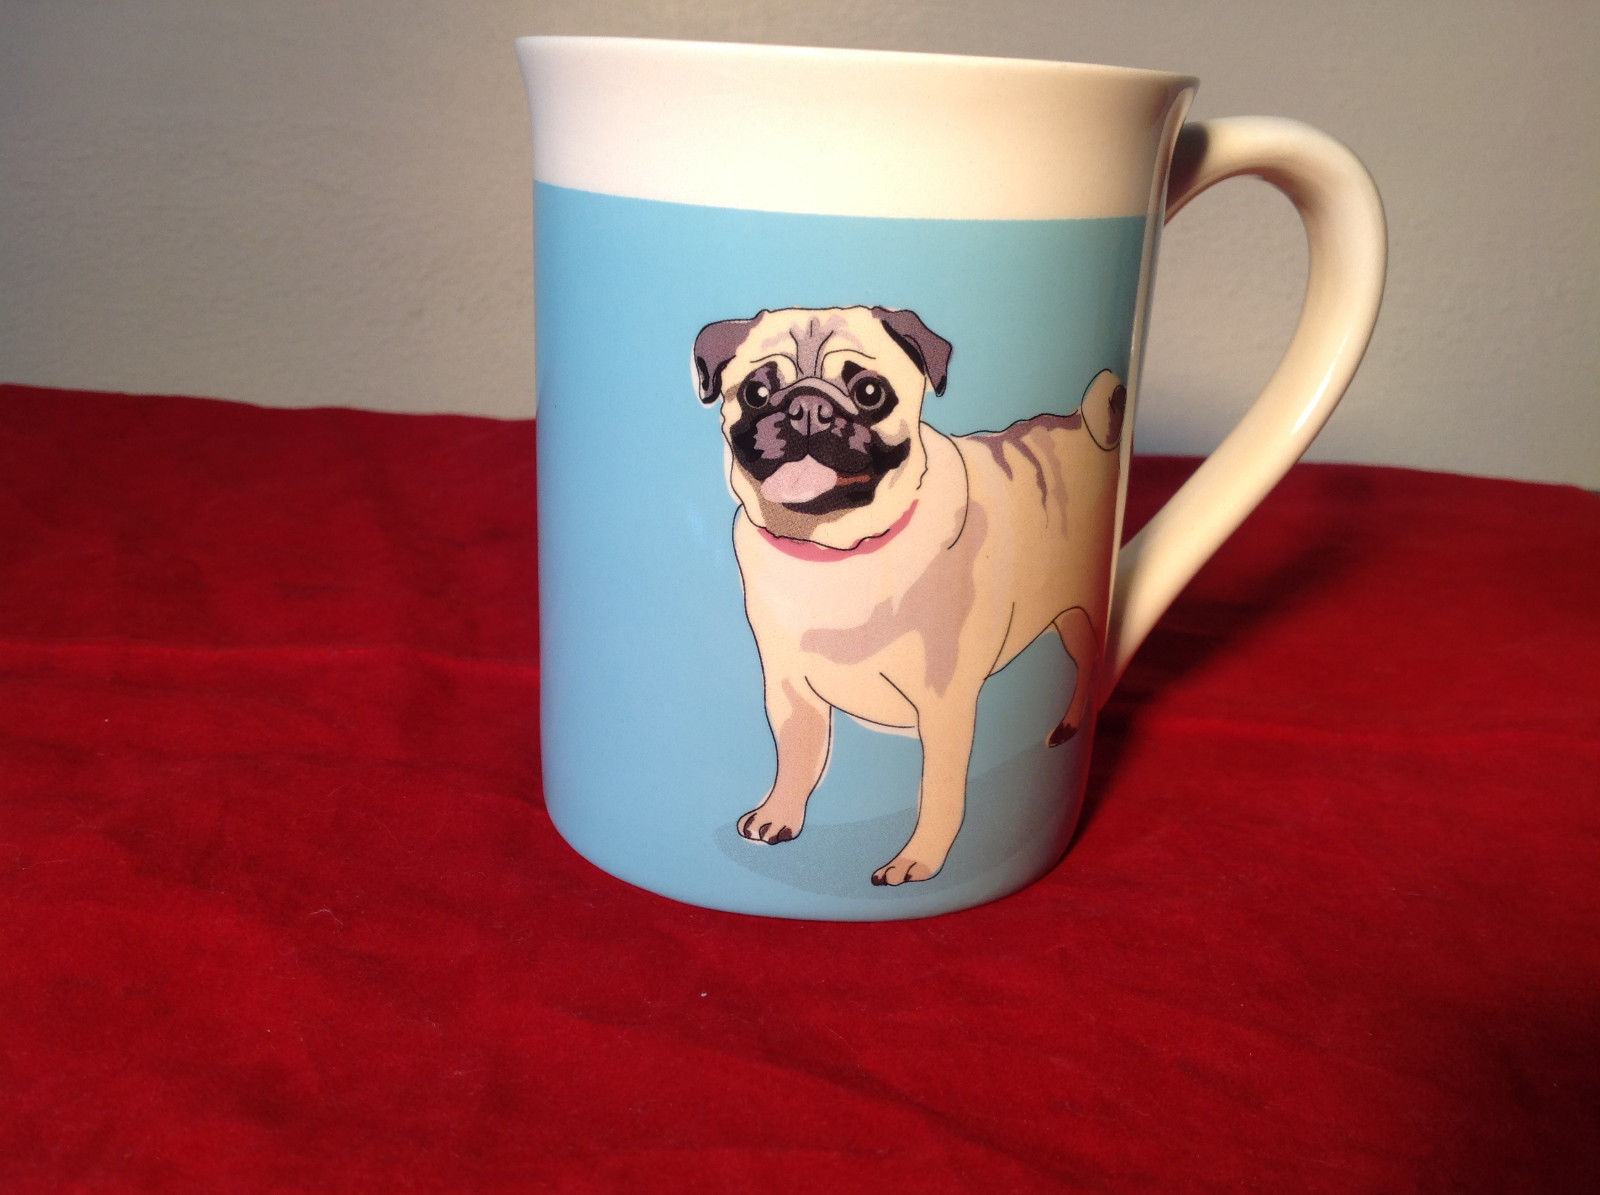 Go Dog Pug Mug by Paper Russells with Original Box 16 ounces Department 56